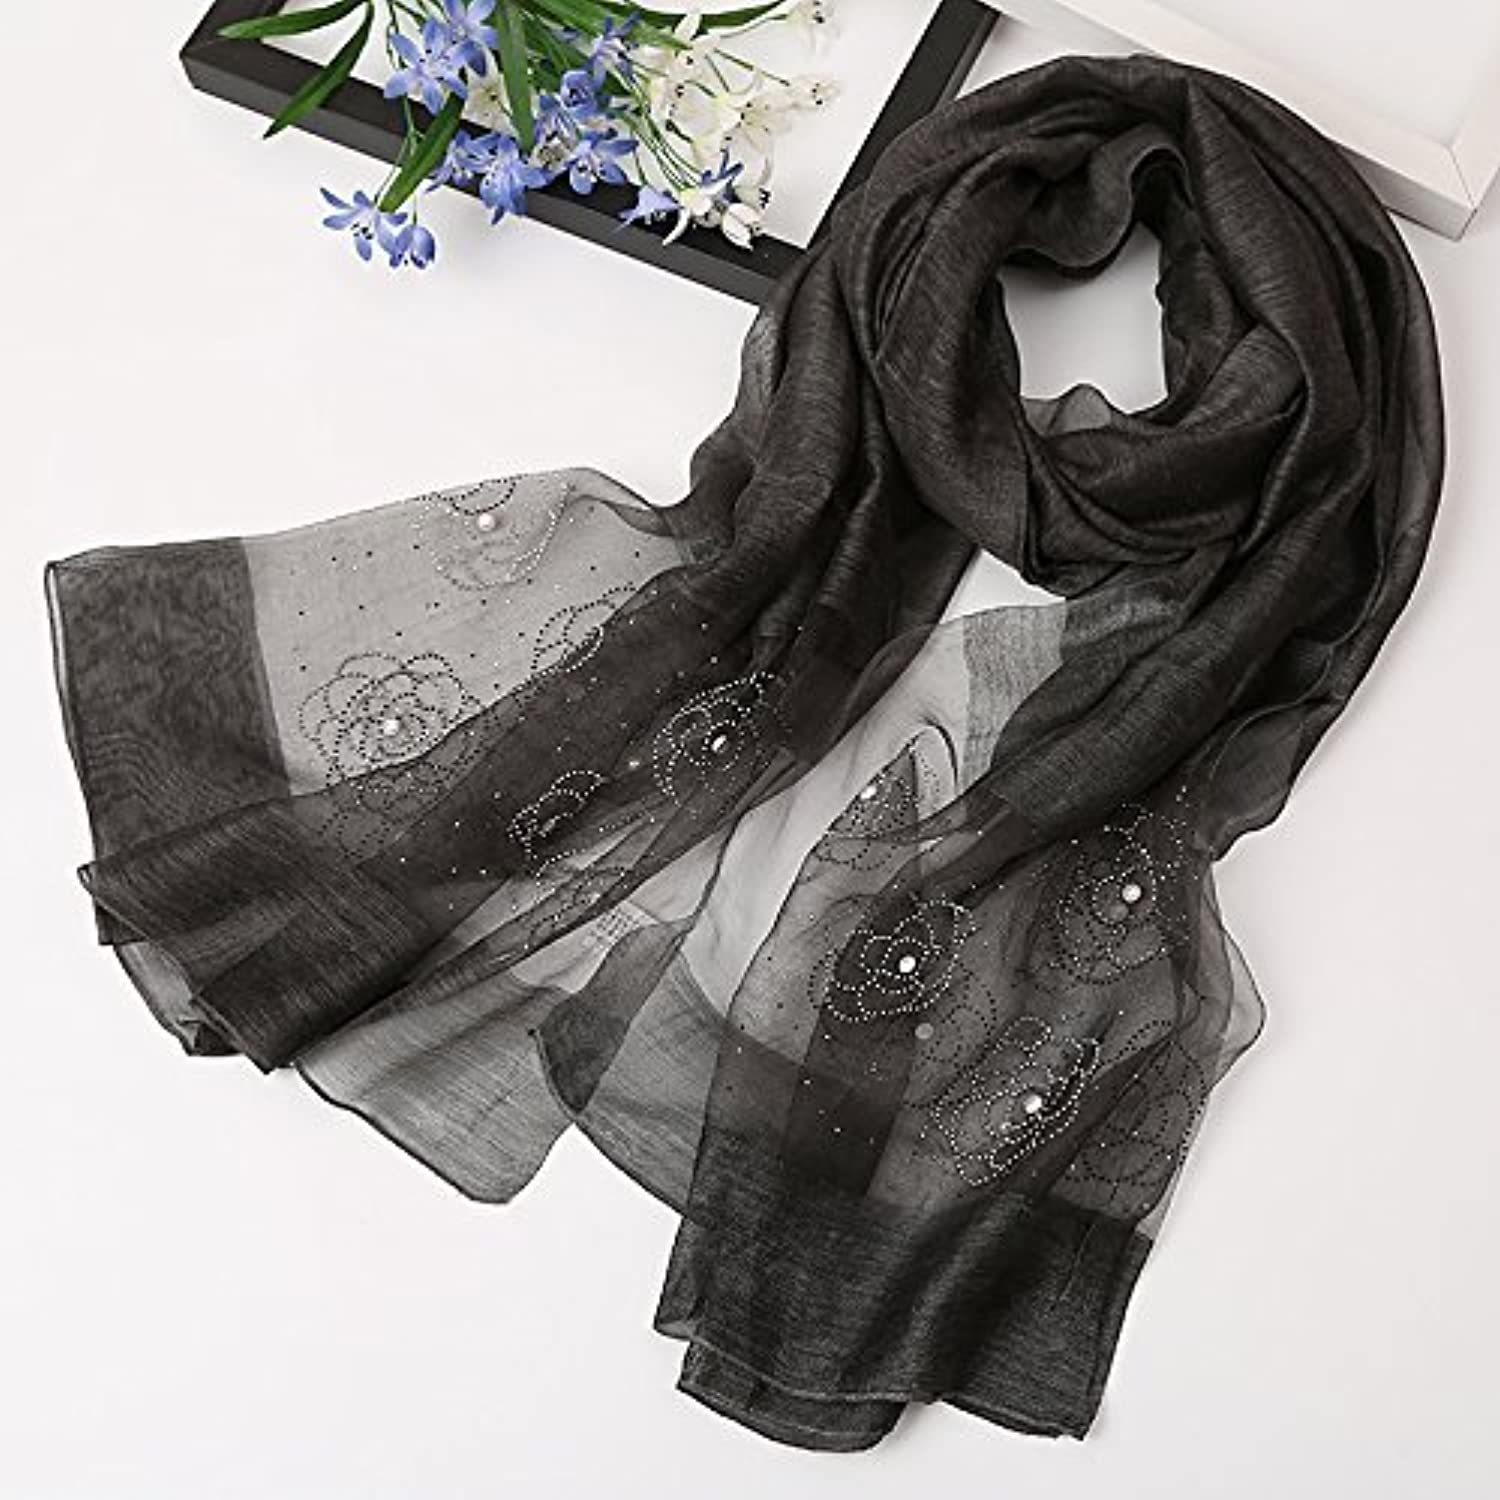 SED ScarfDuring The Spring and Autumn Female Scarf Wild Scarf Silk Shawls Silk Scarf Long Mulberry Silk Scarf Thin Imitation Cashmere Scarf Female Autumn and Winter Korean Students Knitted Shawl lo